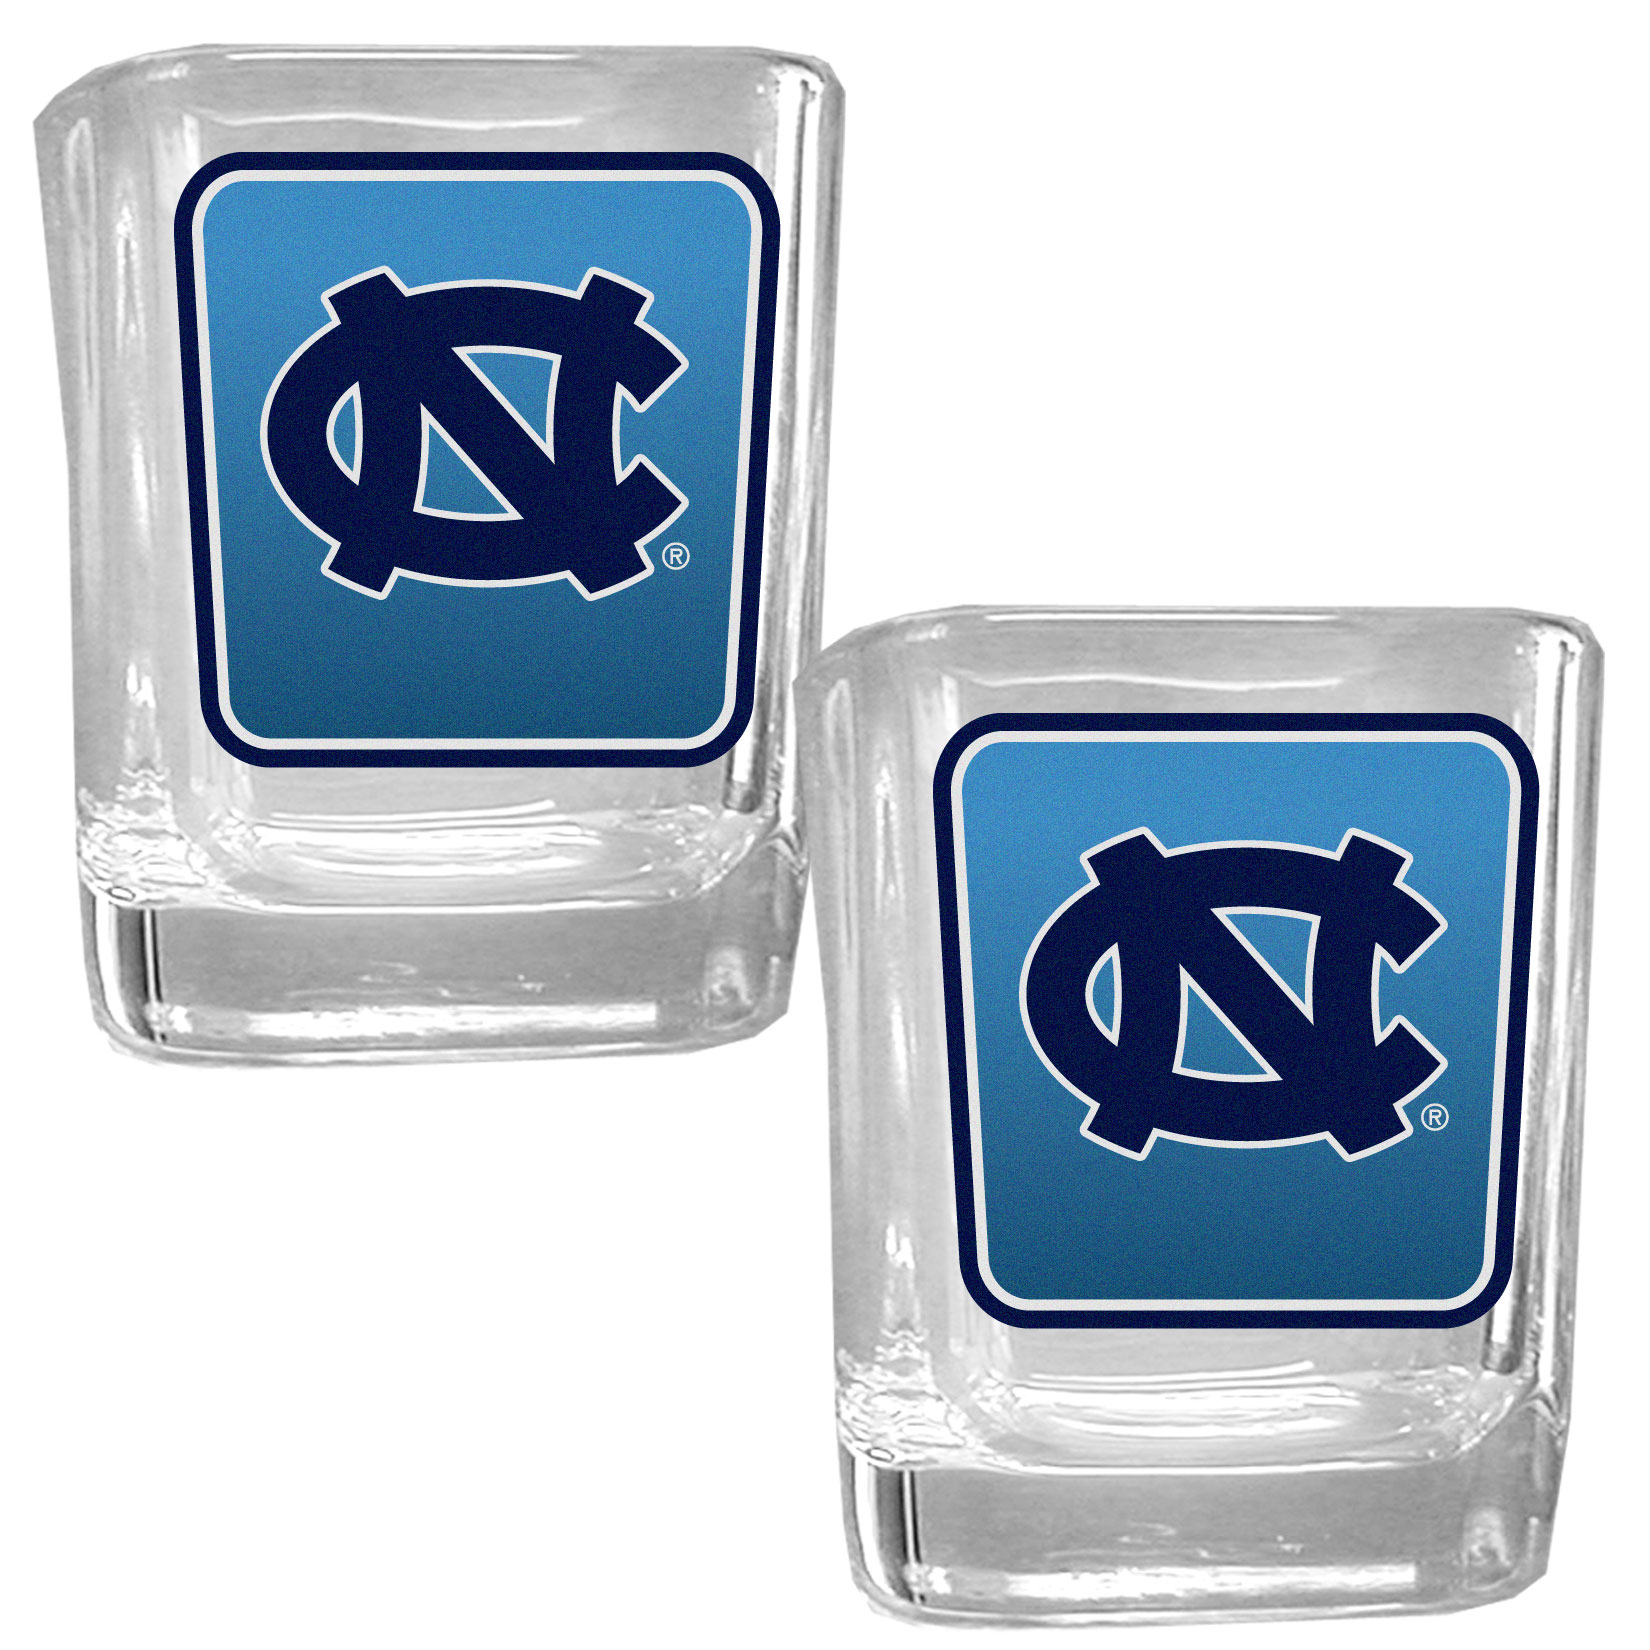 N. Carolina Tar Heels Square Glass Shot Glass Set - Our glass shot glasses are perfect for collectors or any game day event. The 2 ounce glasses feature bright, vidid digital N. Carolina Tar Heels graphics. Comes in a set of 2.